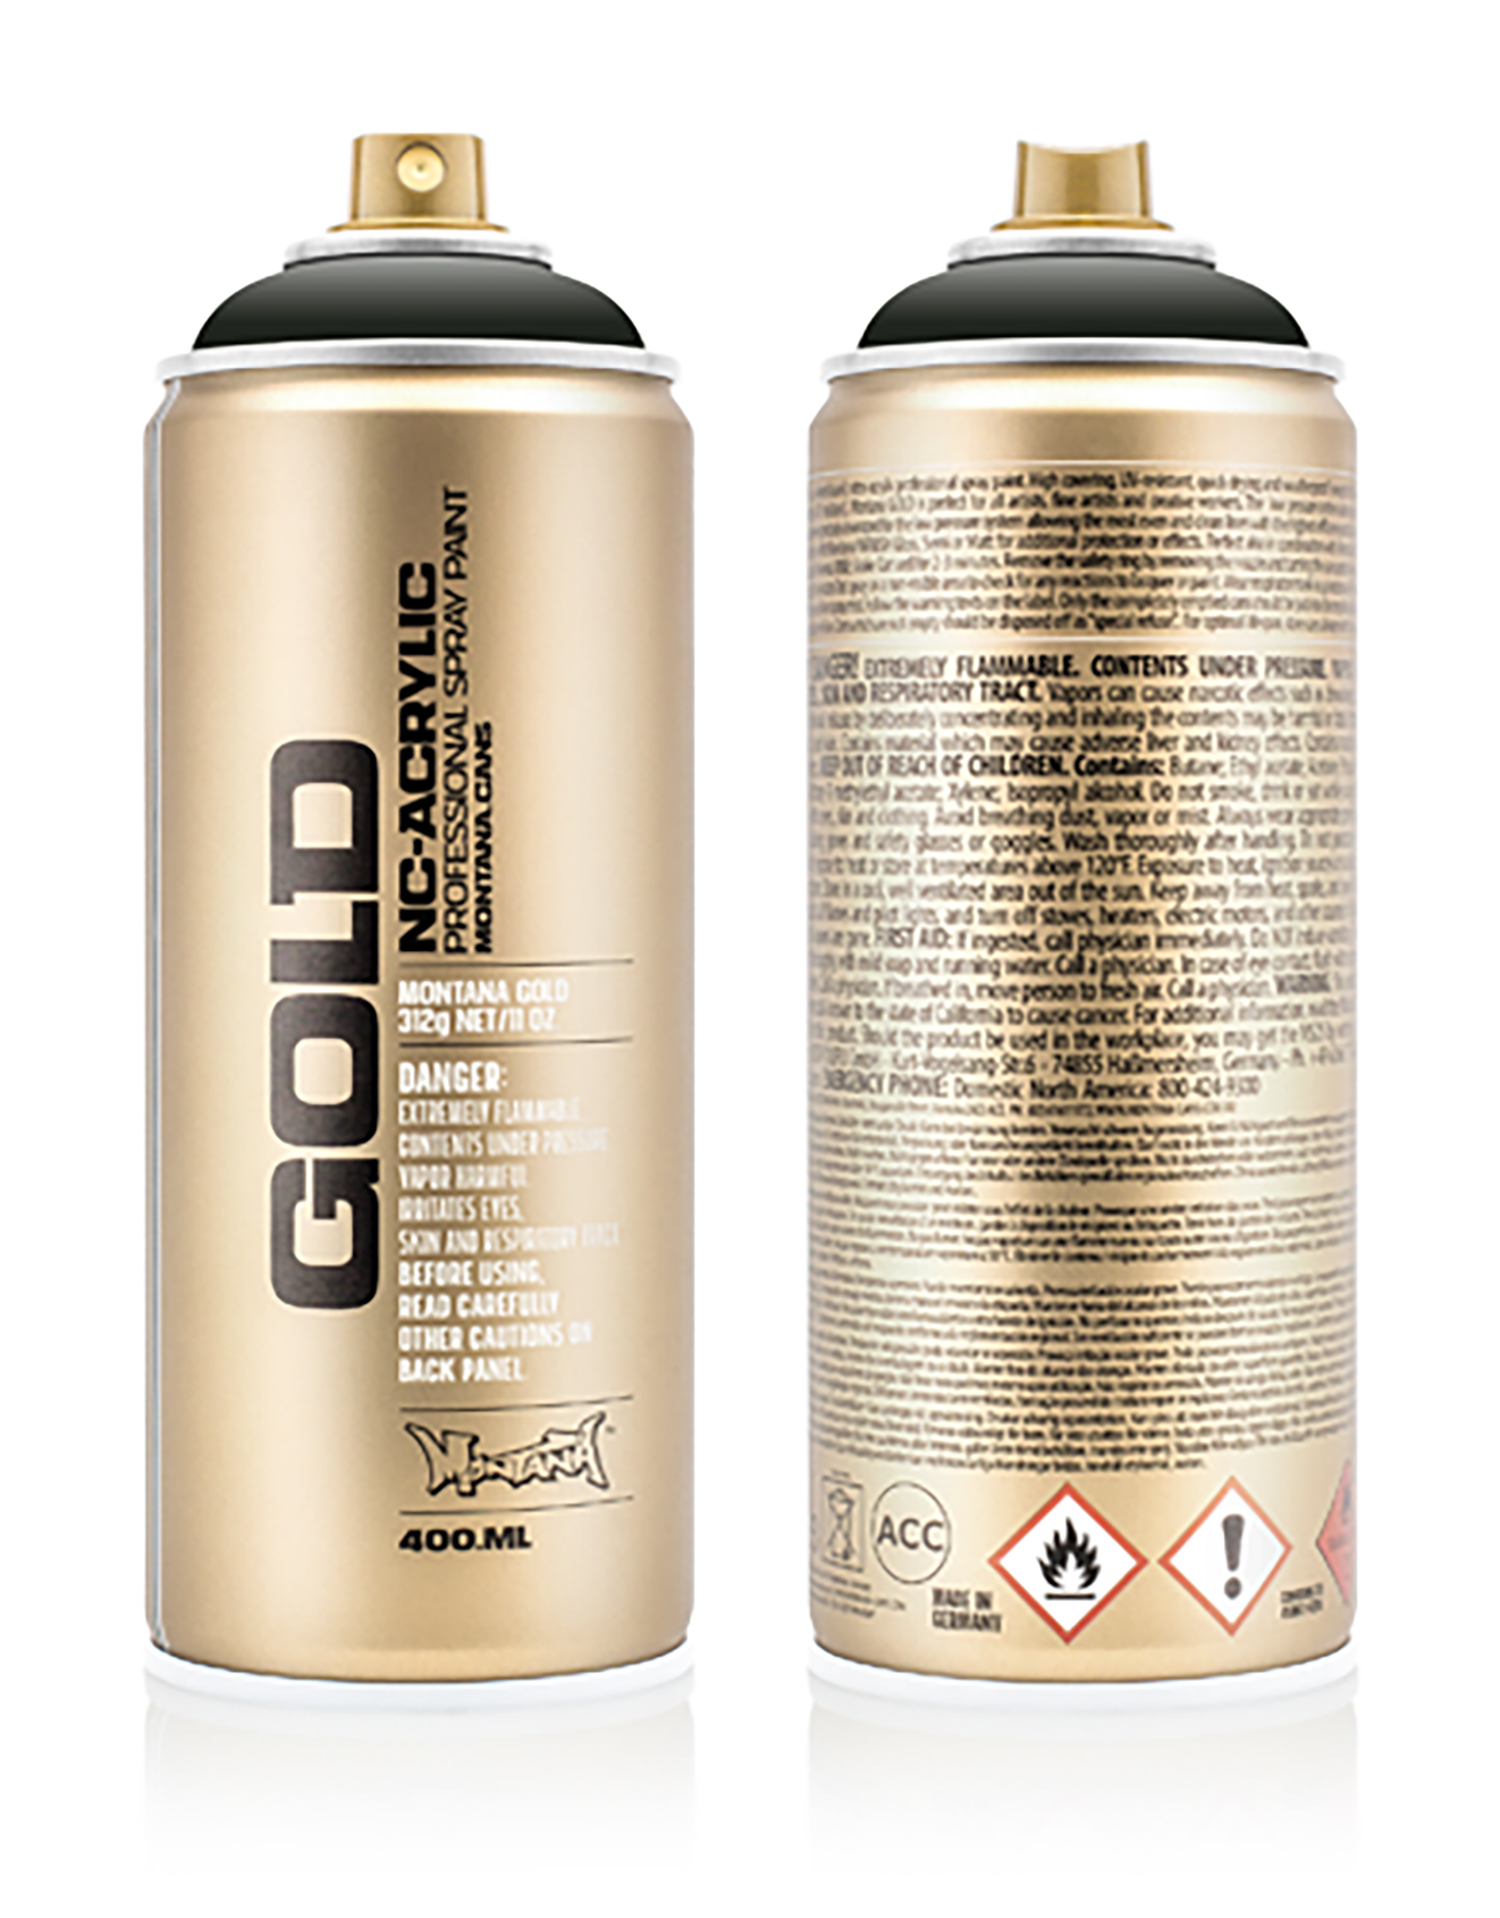 MONTANA-GOLD-SPRAY-400ML-G-1180